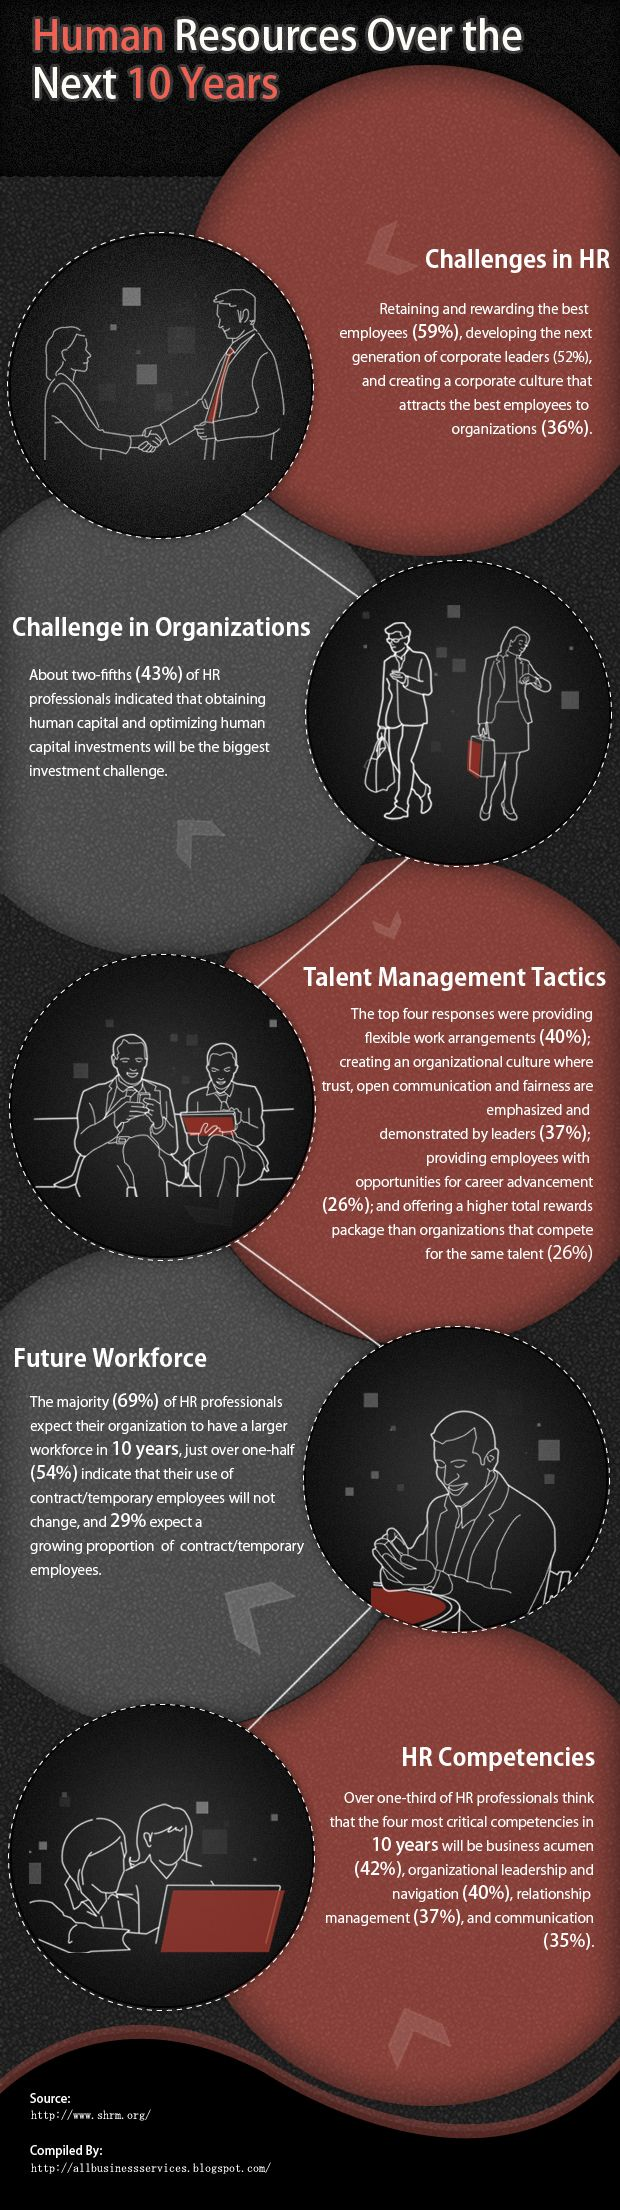 Being prepared is another skill an HR Professional should have. This infographic portrays what is going to become of Human Resources over the next 10 years.